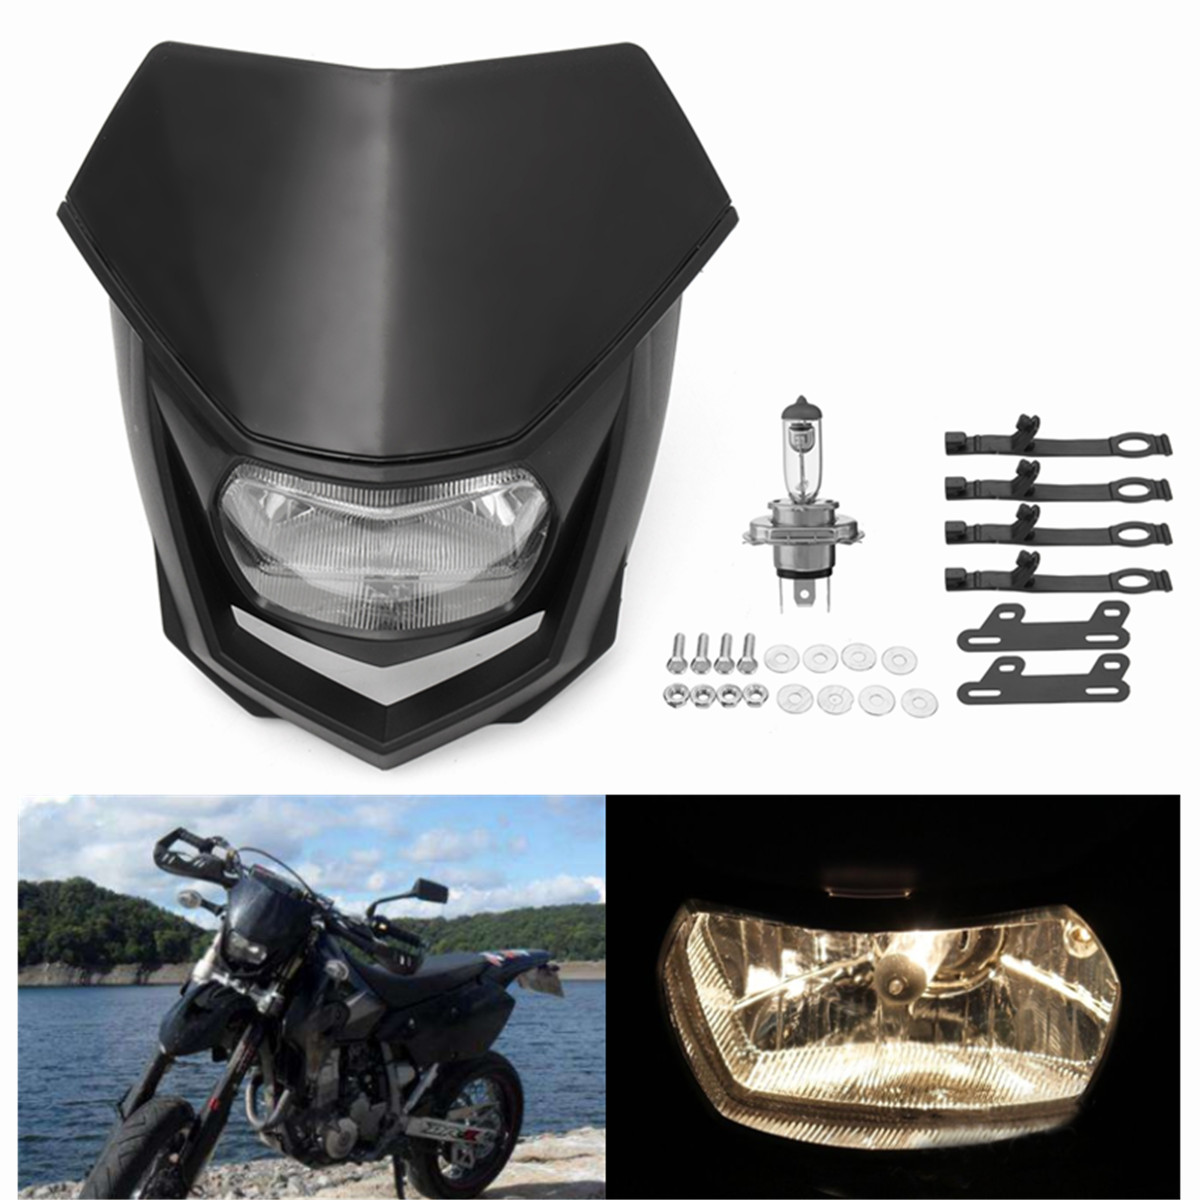 New 12V <font><b>Universal</b></font> Motorcycle <font><b>Dirt</b></font> <font><b>Bike</b></font> Halo <font><b>Headlight</b></font> Headlamp Dirtbike <font><b>Headlight</b></font> Enduro For KTM CRF XR WRF YZF DRZ KLX YM-004 image